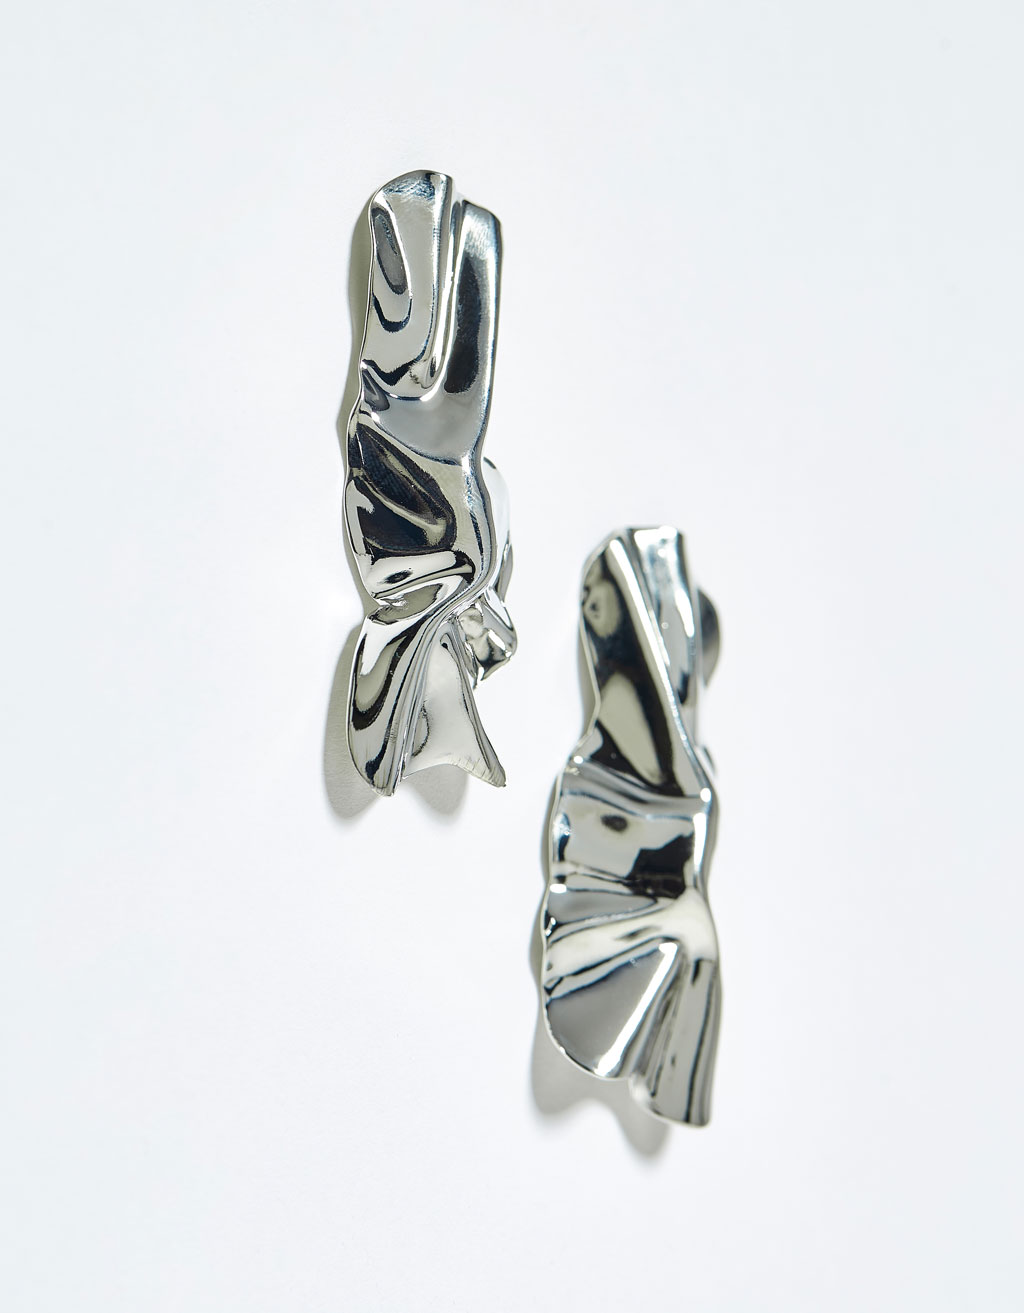 Metallic textured earrings